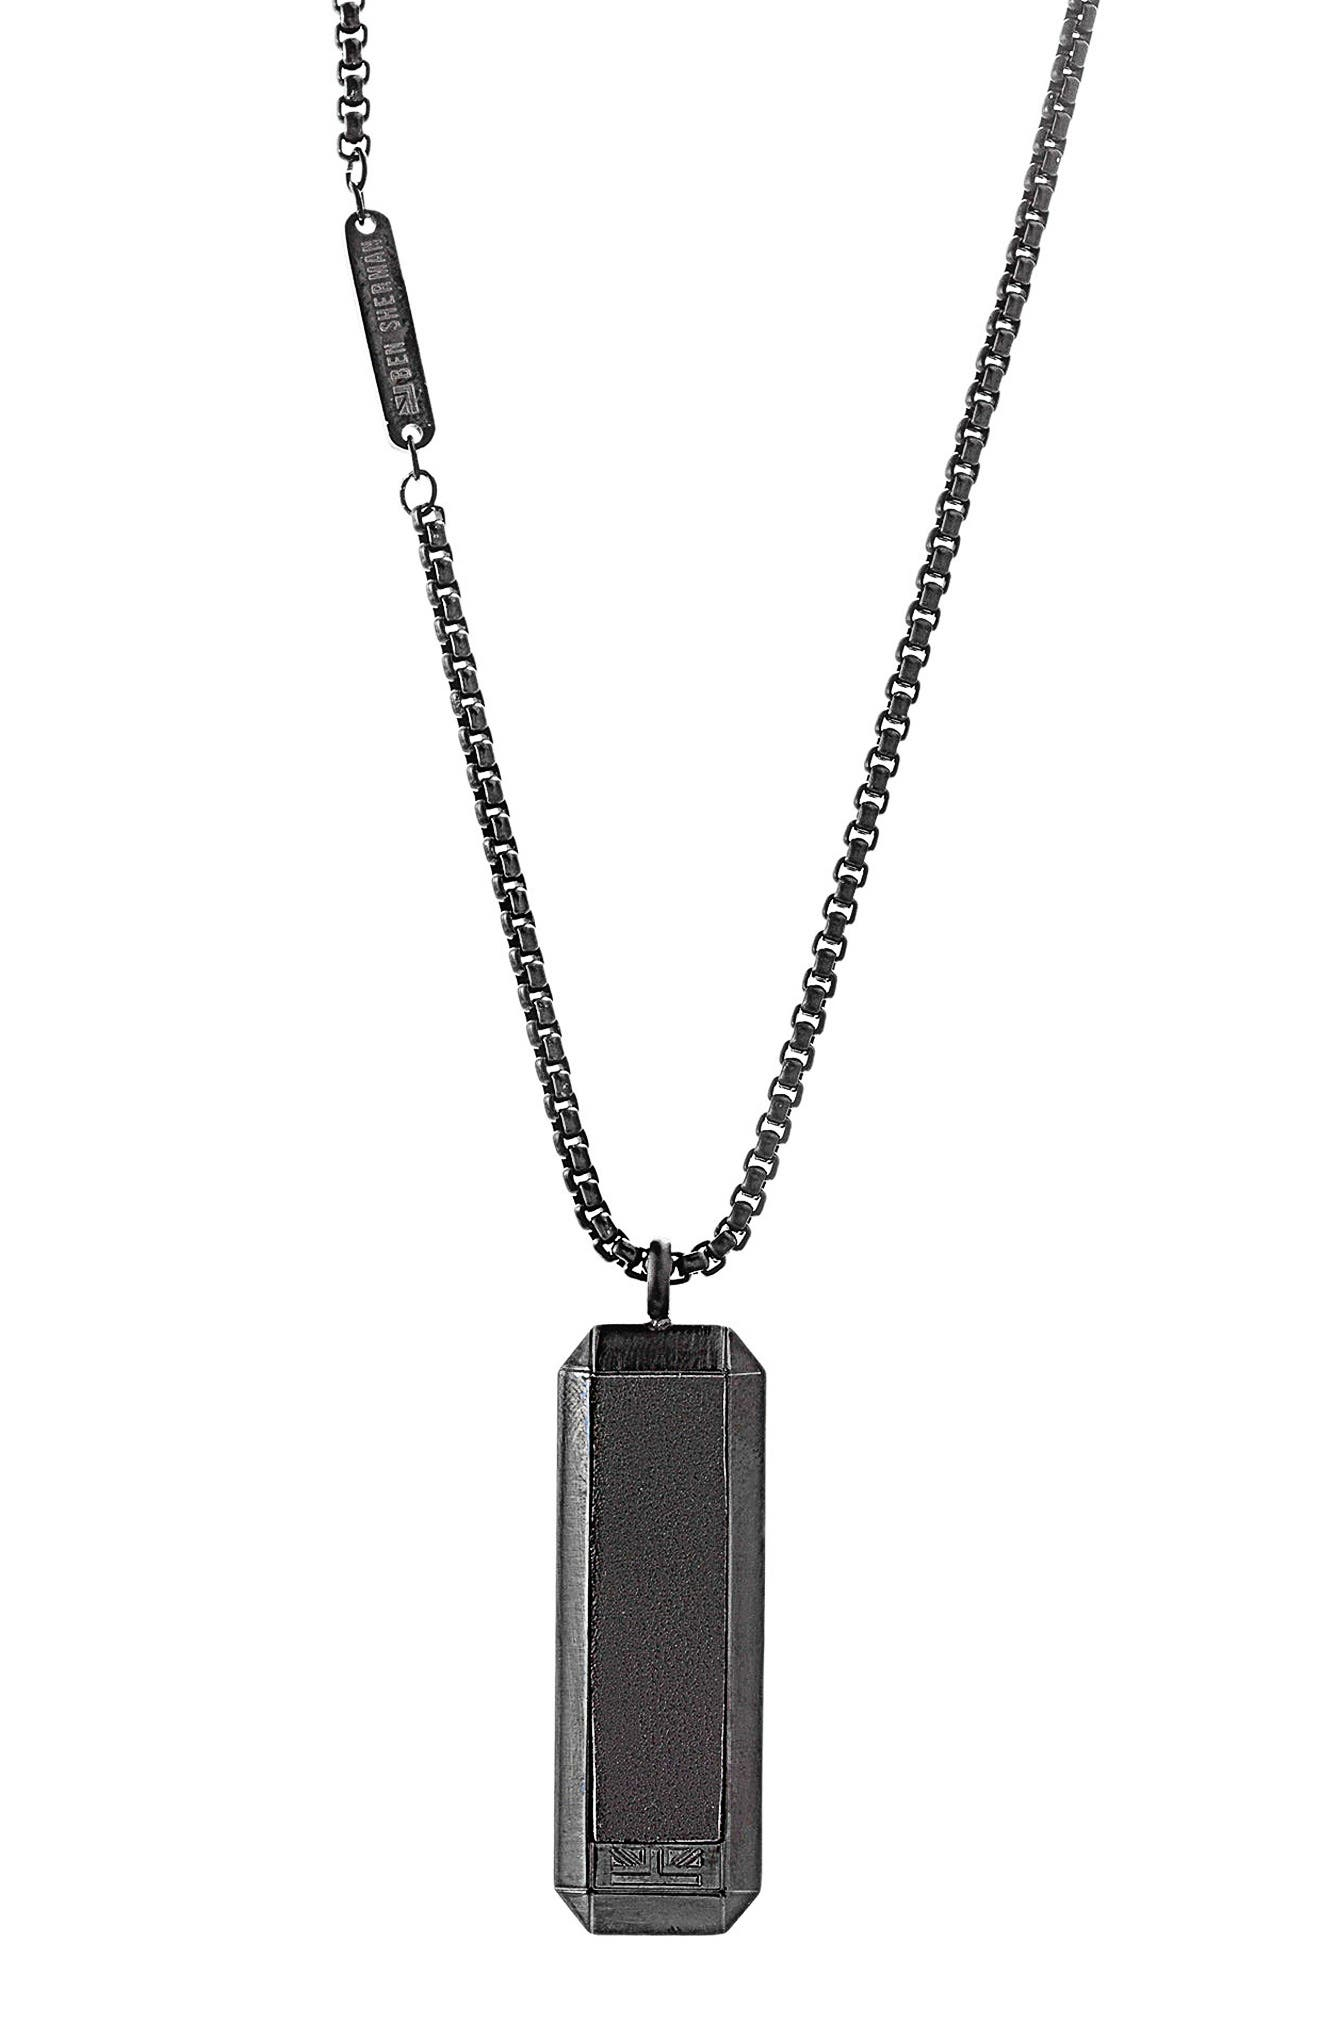 Leather Dog Tag Necklace,                             Main thumbnail 1, color,                             004